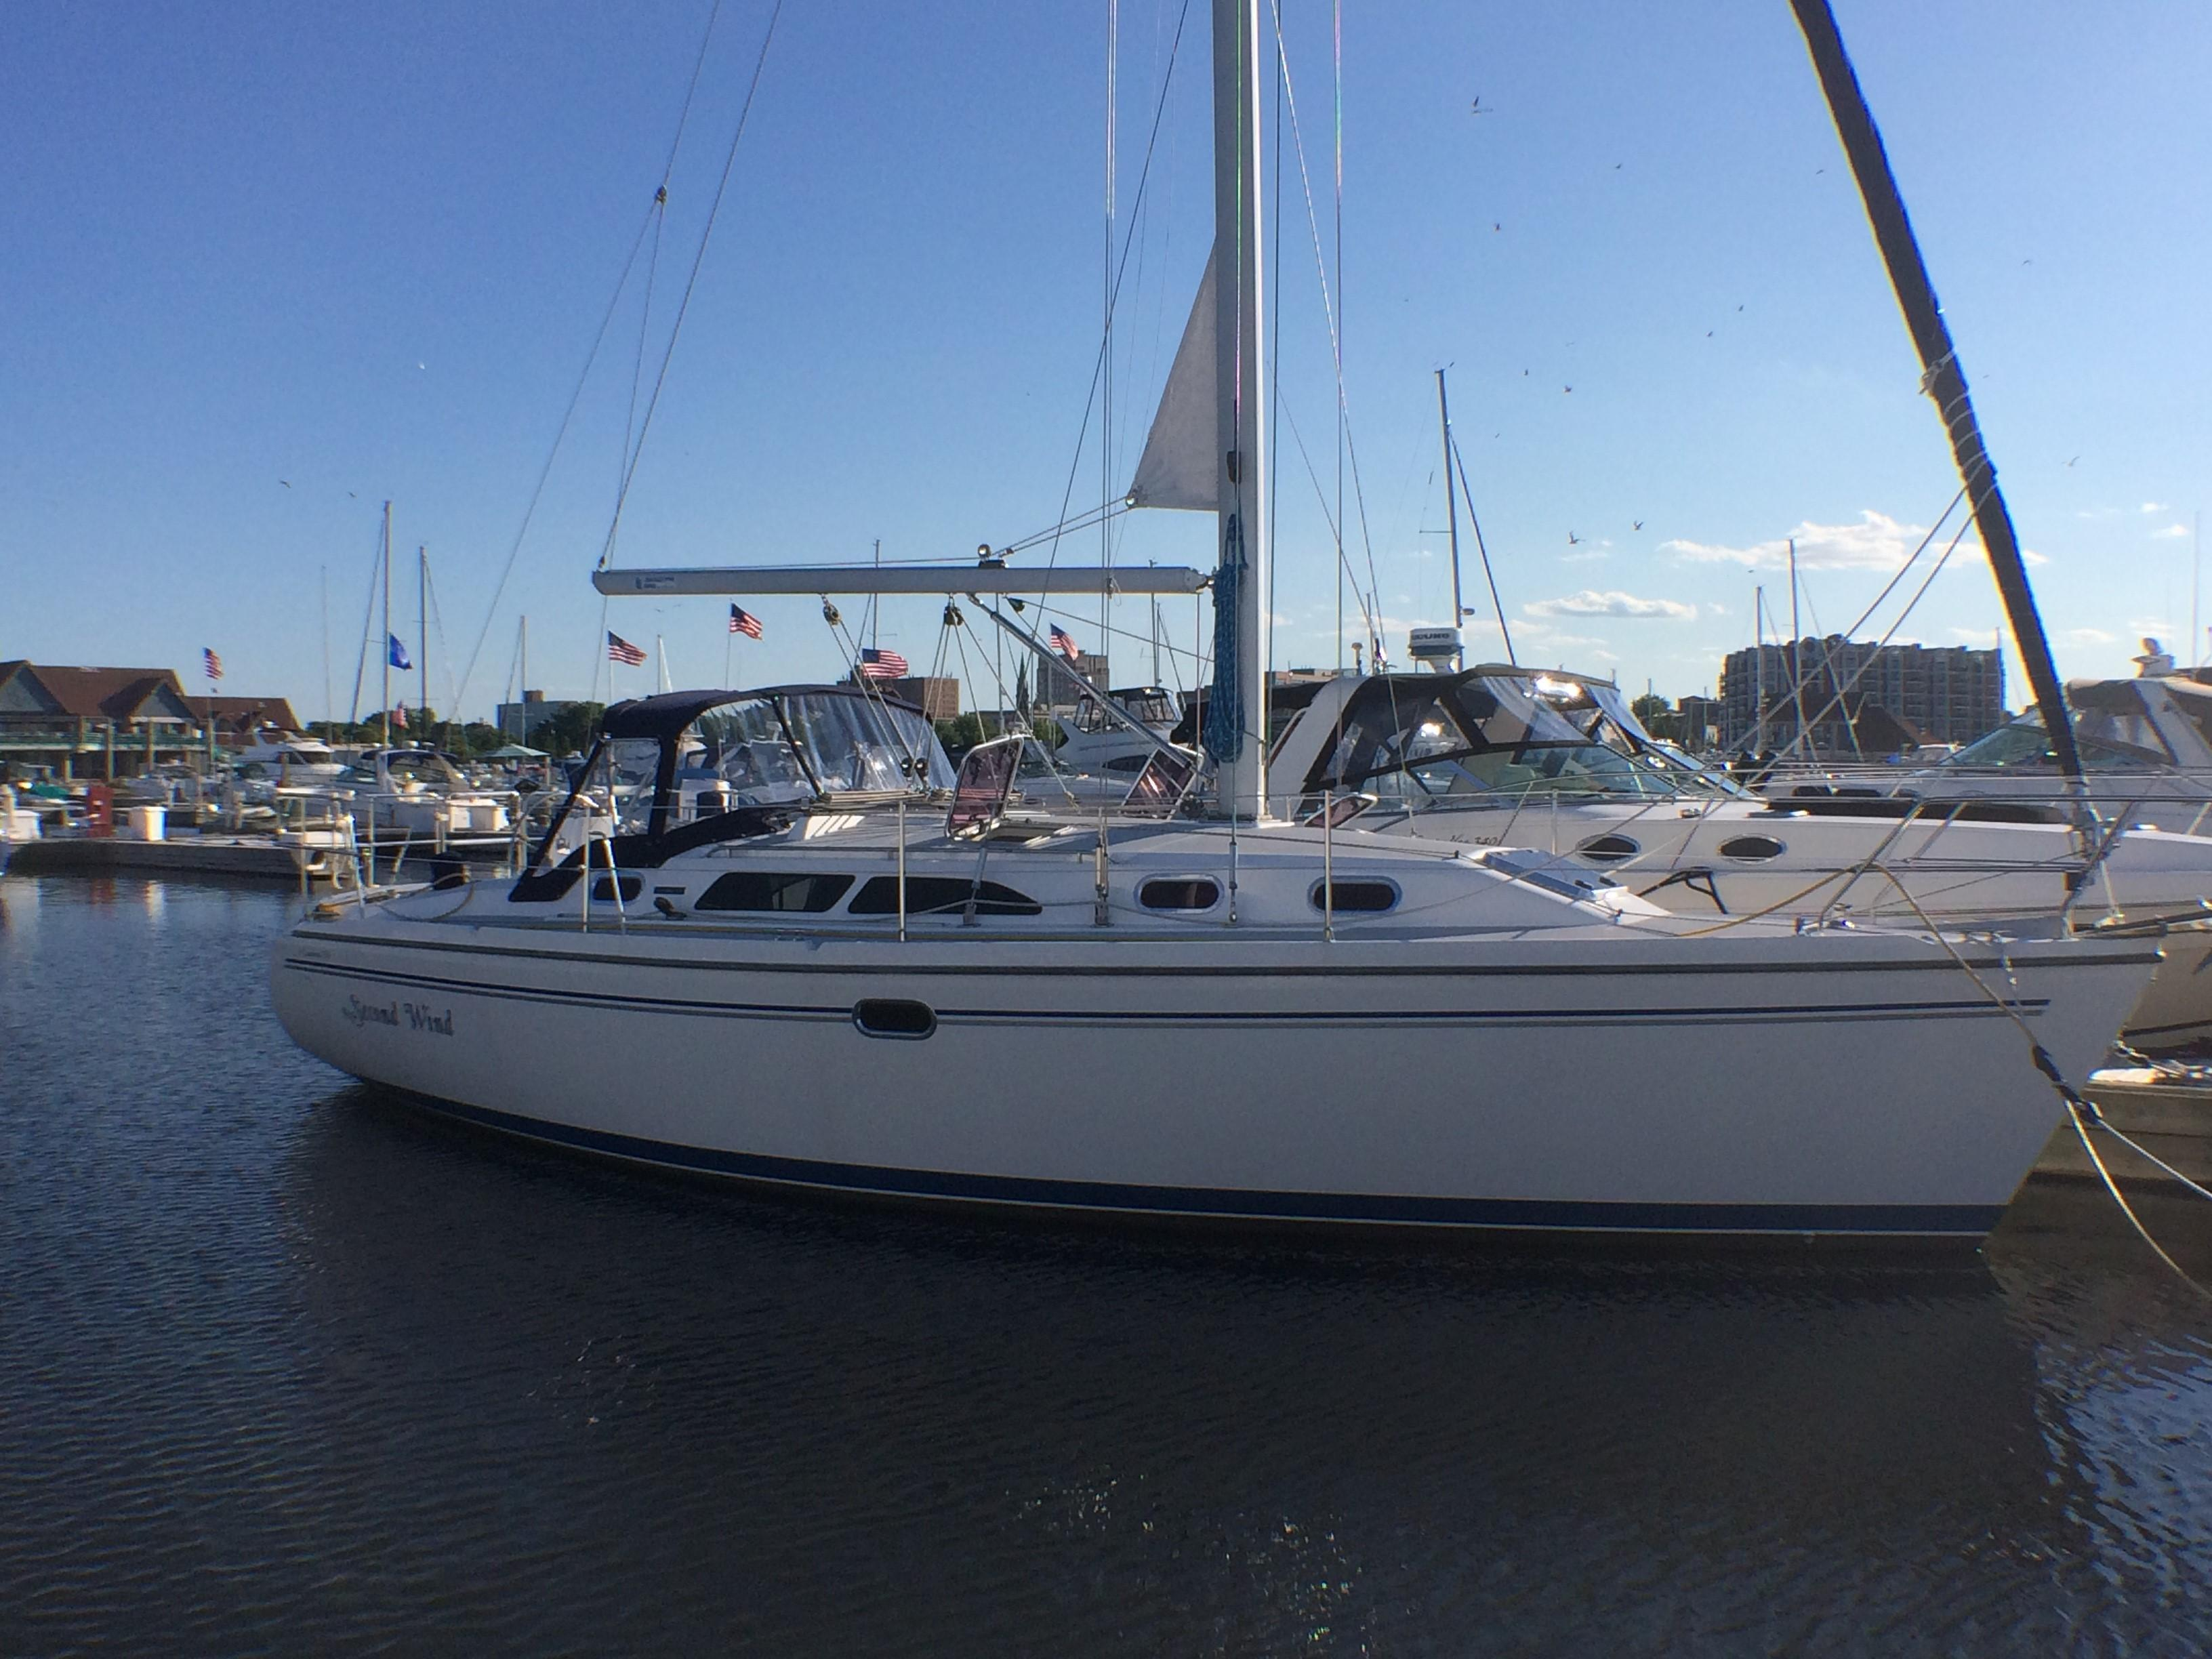 2005 catalina 350 sail boat for sale www yachtworld com rh yachtworld com Catalina 350 Brochure Catalina 350 Drawing